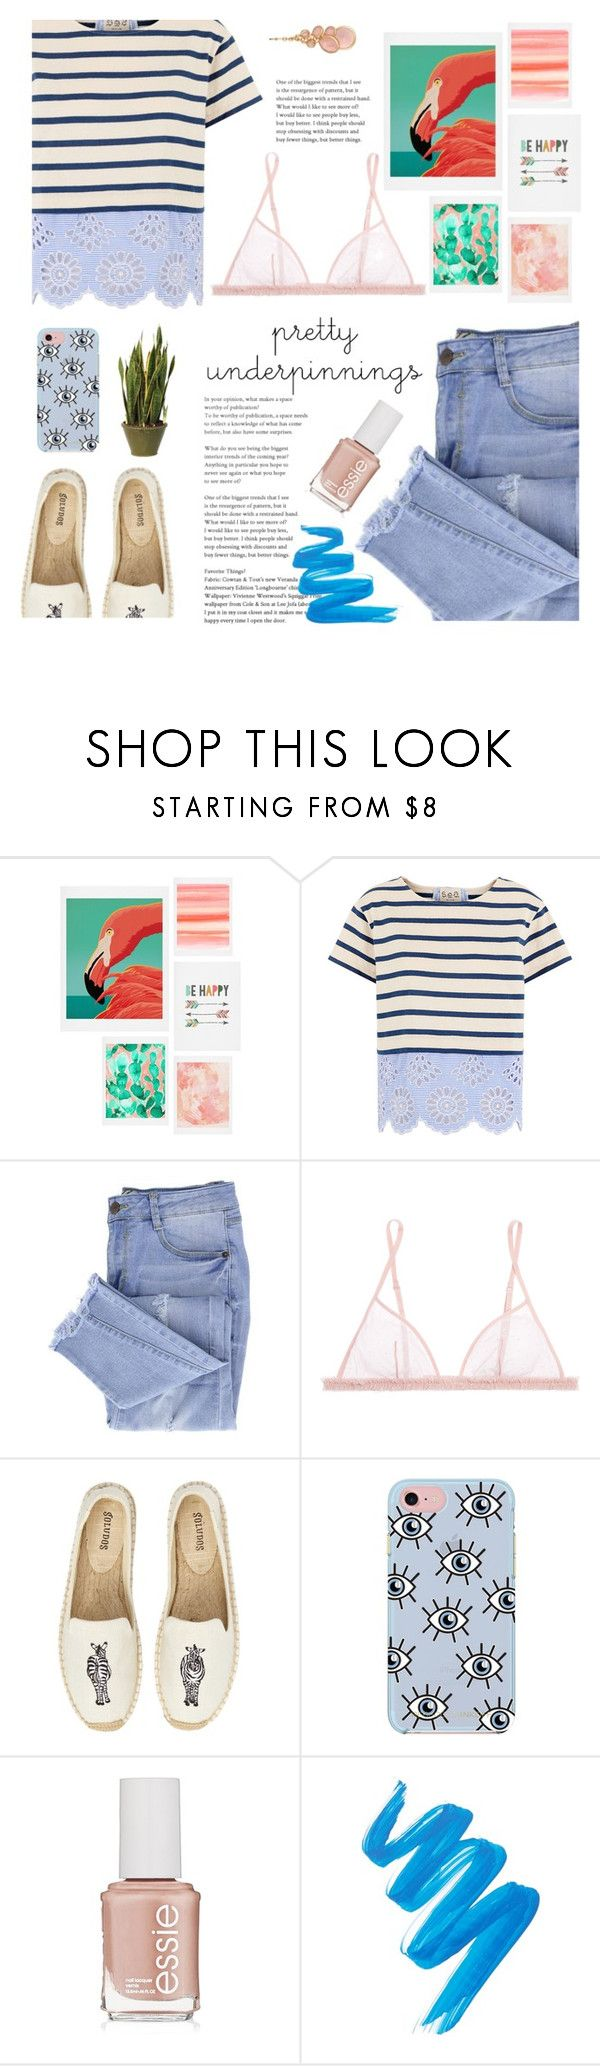 """Don't Worry, Be Happy"" by icyhot ❤ liked on Polyvore featuring DENY Designs, Sea, New York, Essie, La Perla, Soludos, Rebecca Minkoff, L.A. Girl, Avon, contest and bralette"